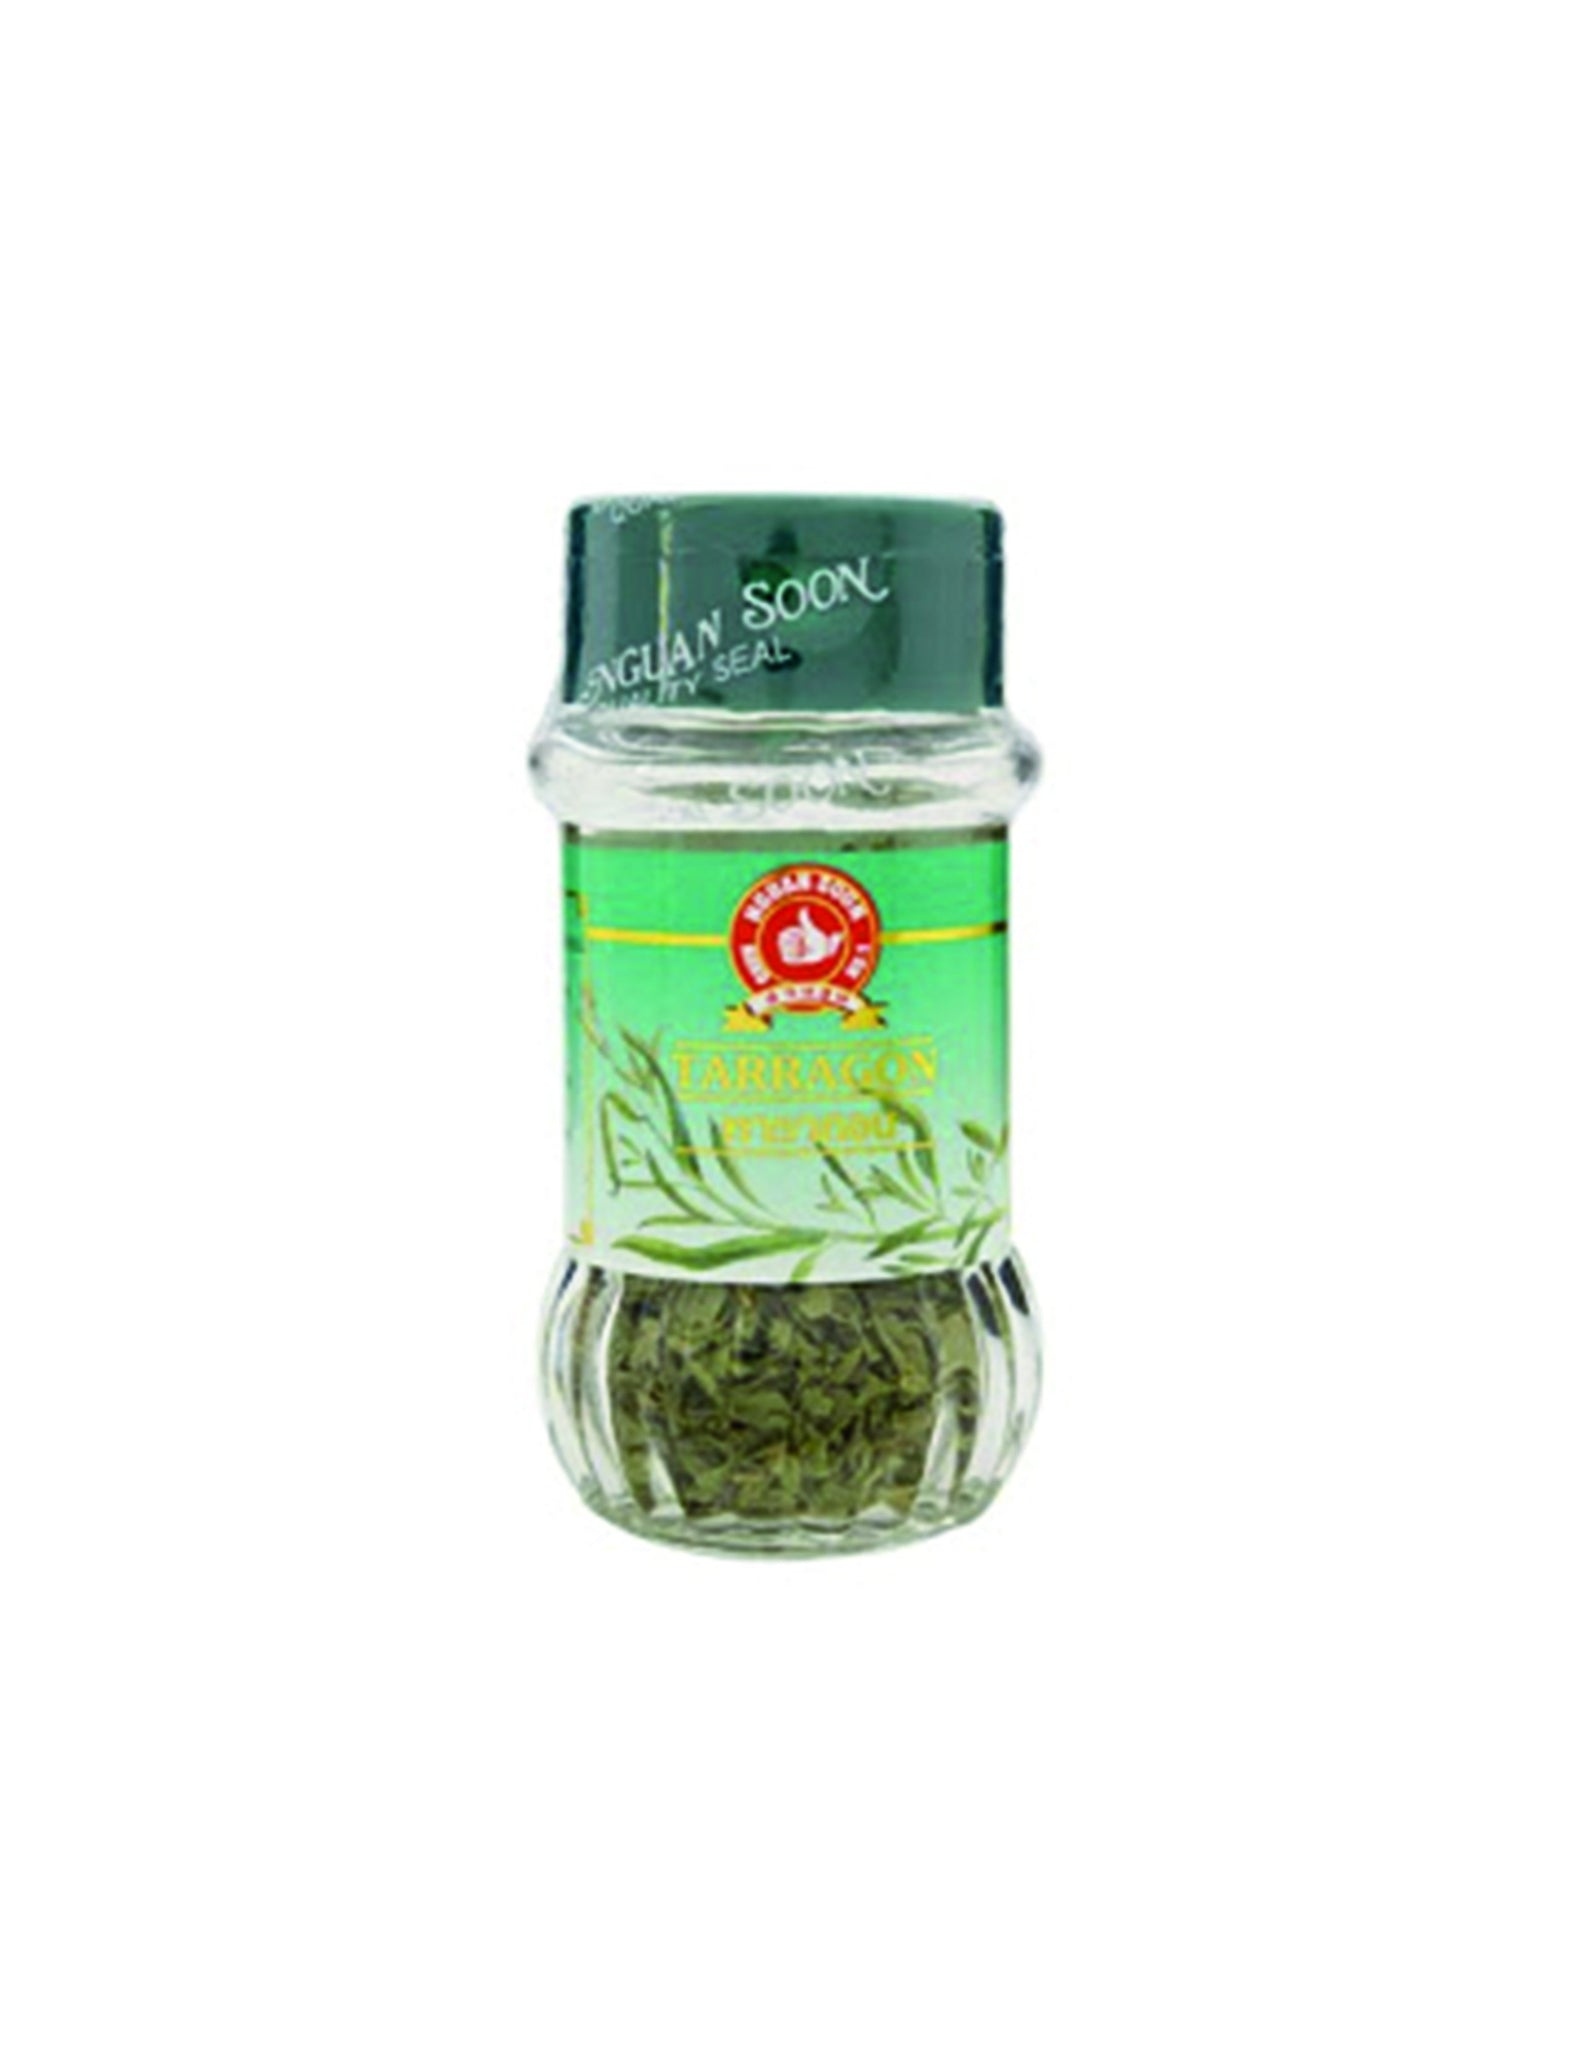 tha>Nguan Soon Taragon herbs and spices 12 grams